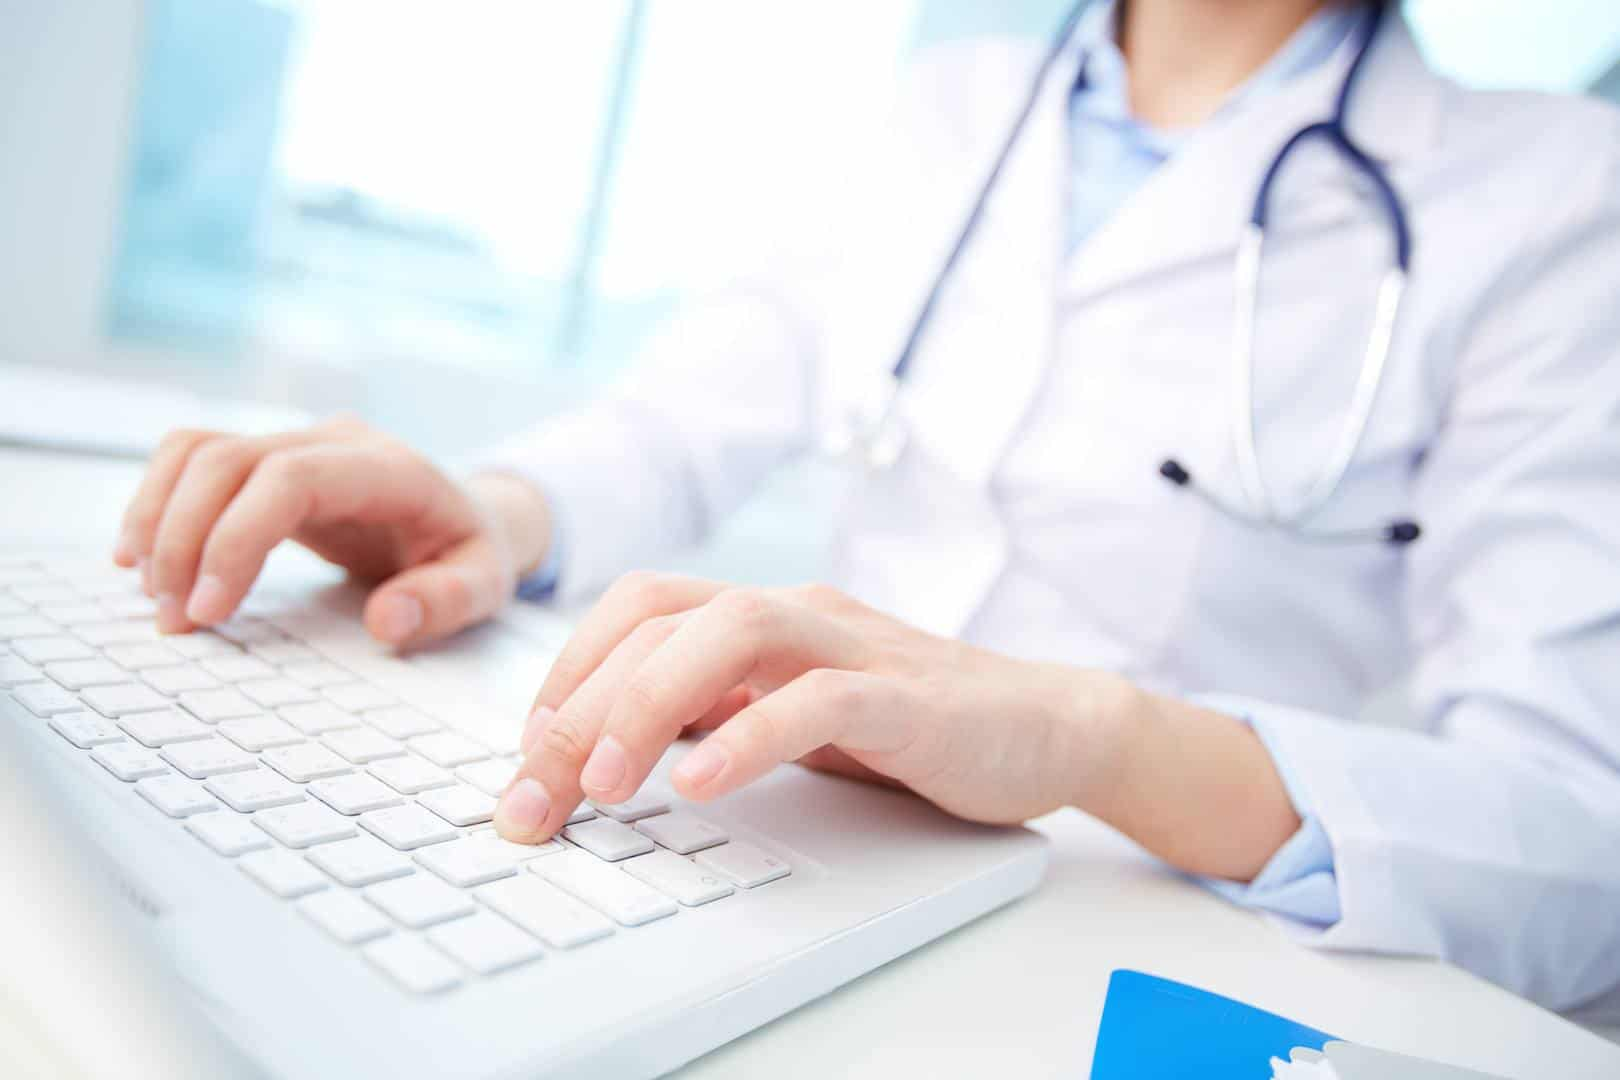 medical person wearing stethoscope typing on a keyboard